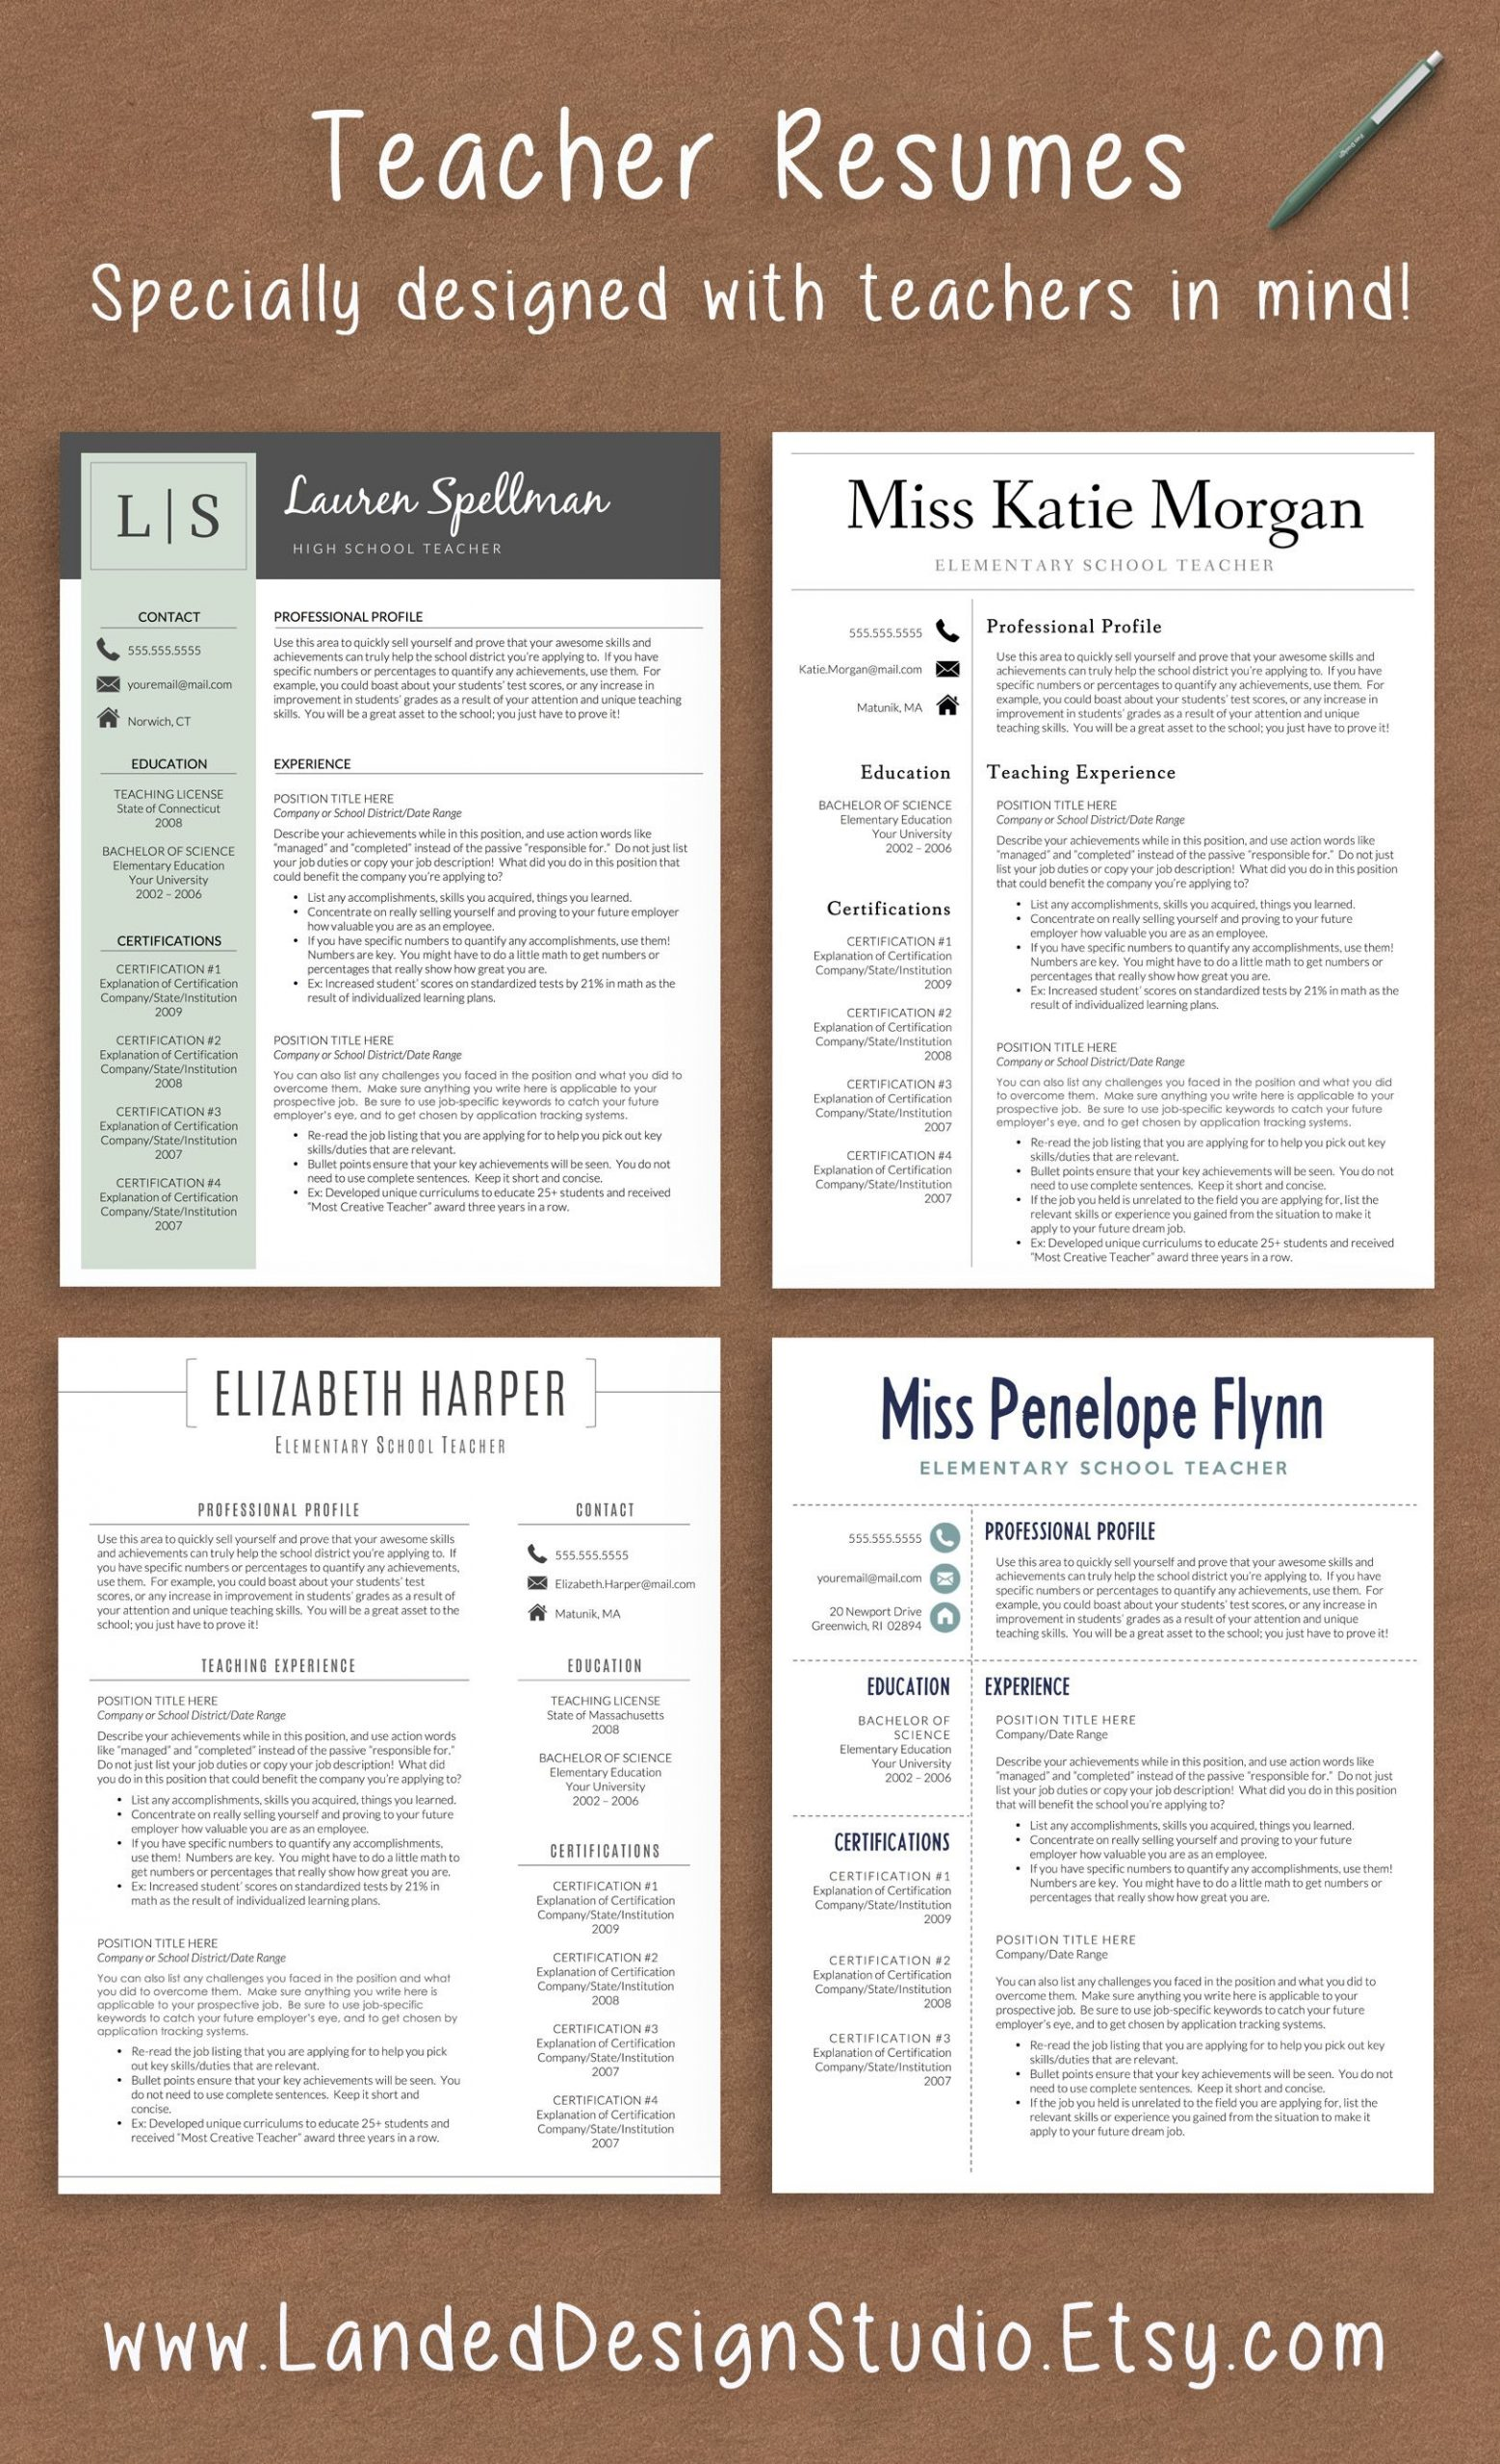 Professionally designed resumes with teachers in mind pletely transform your resume with a teacher resume template for $15